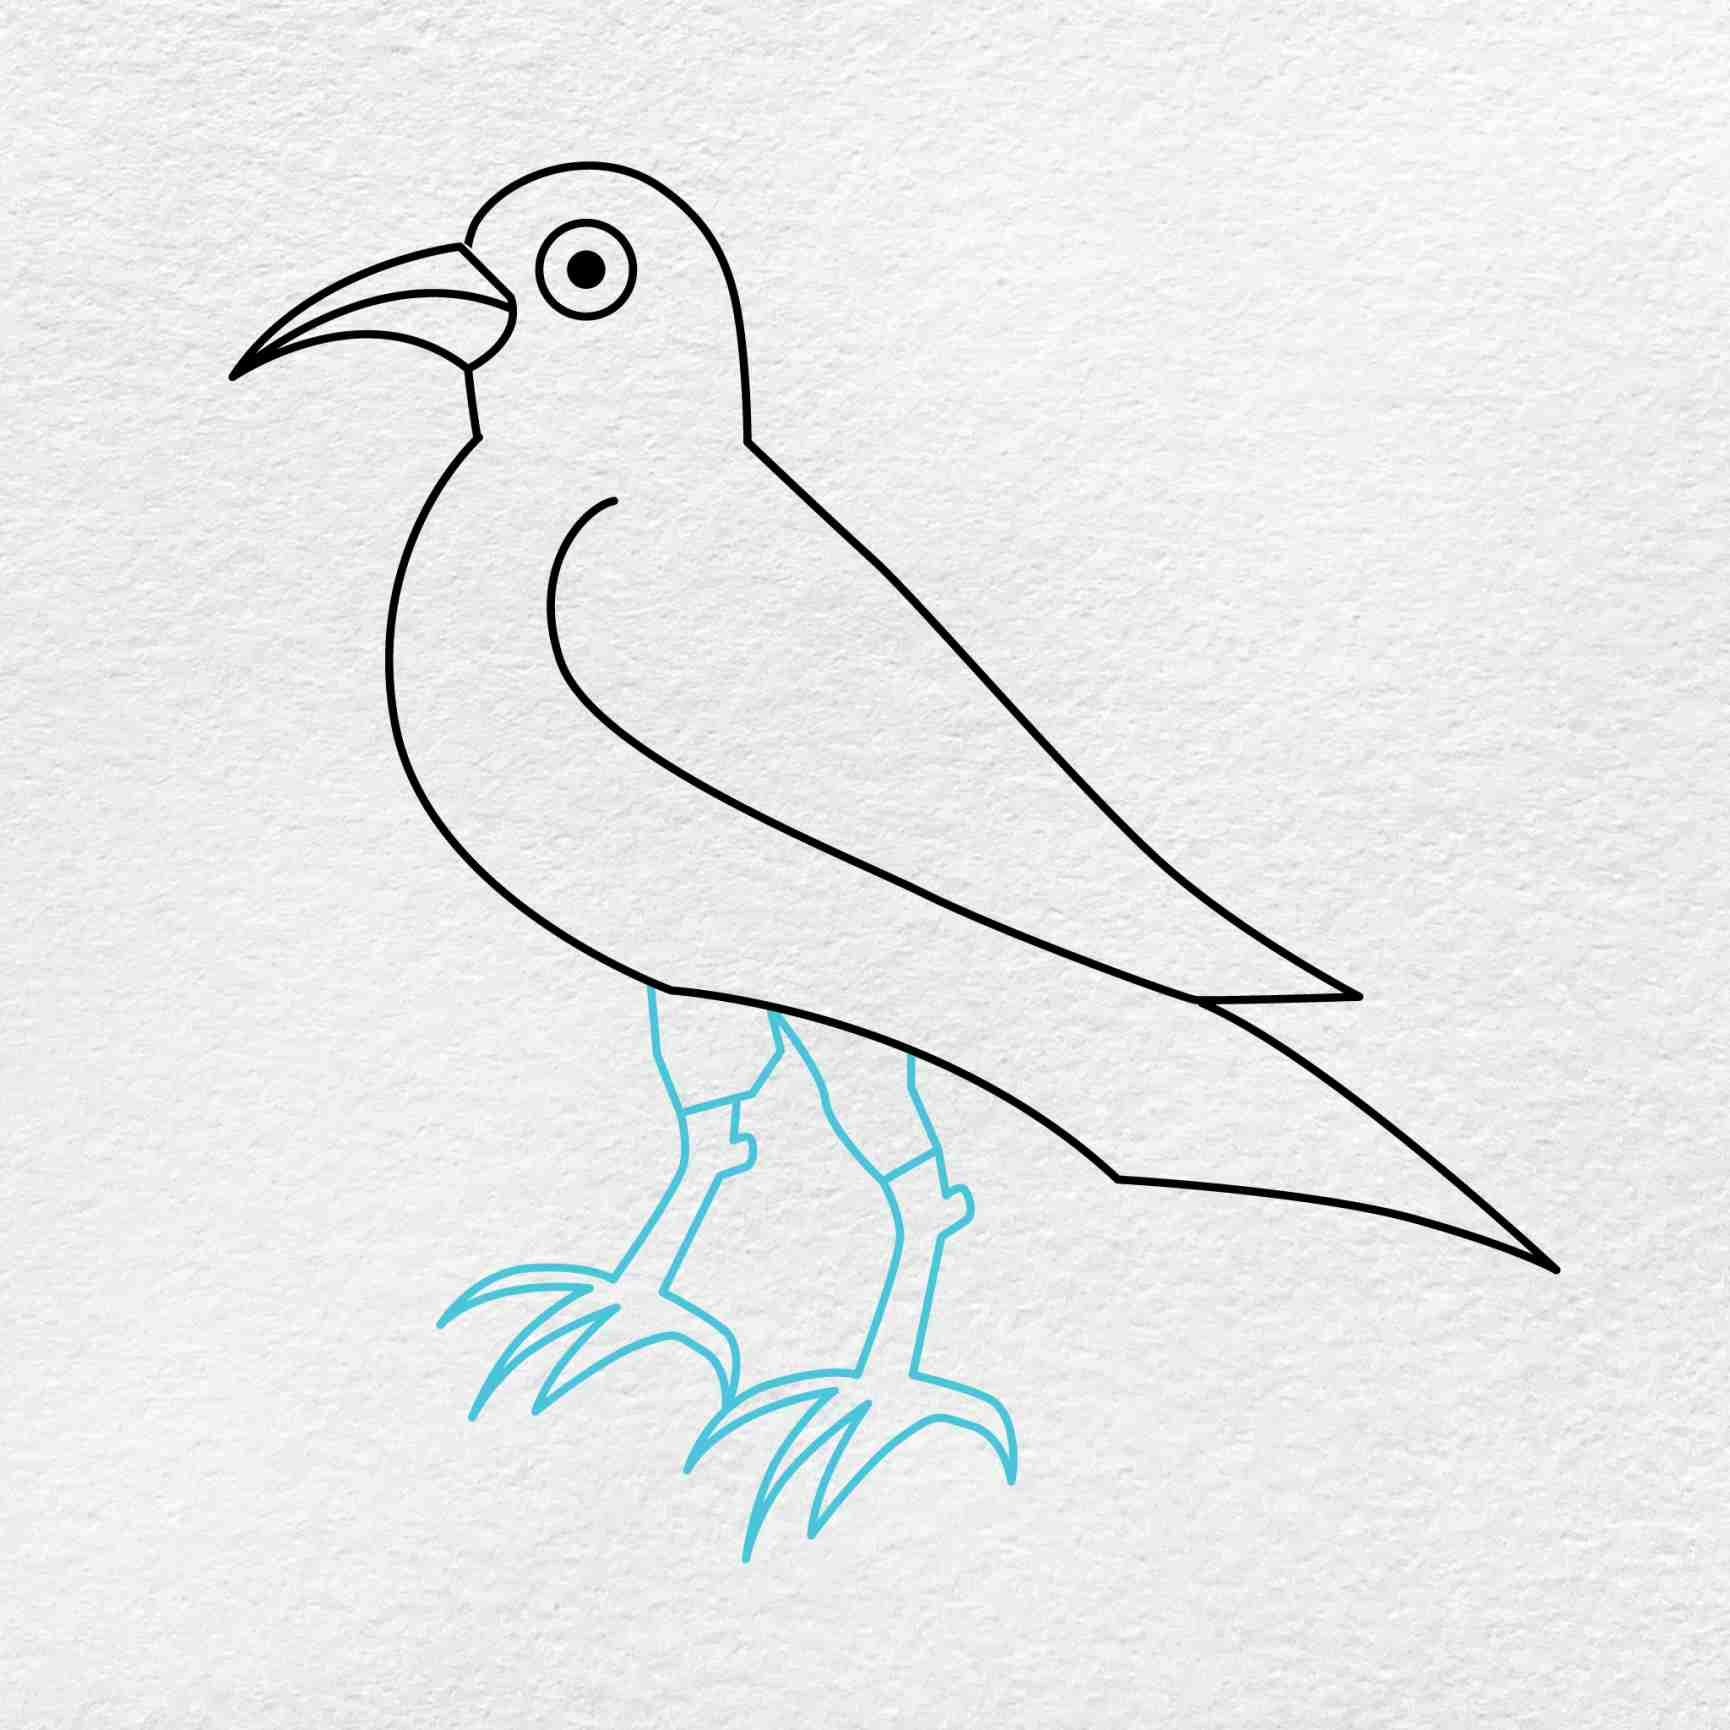 How To Draw A Crow: Step 5